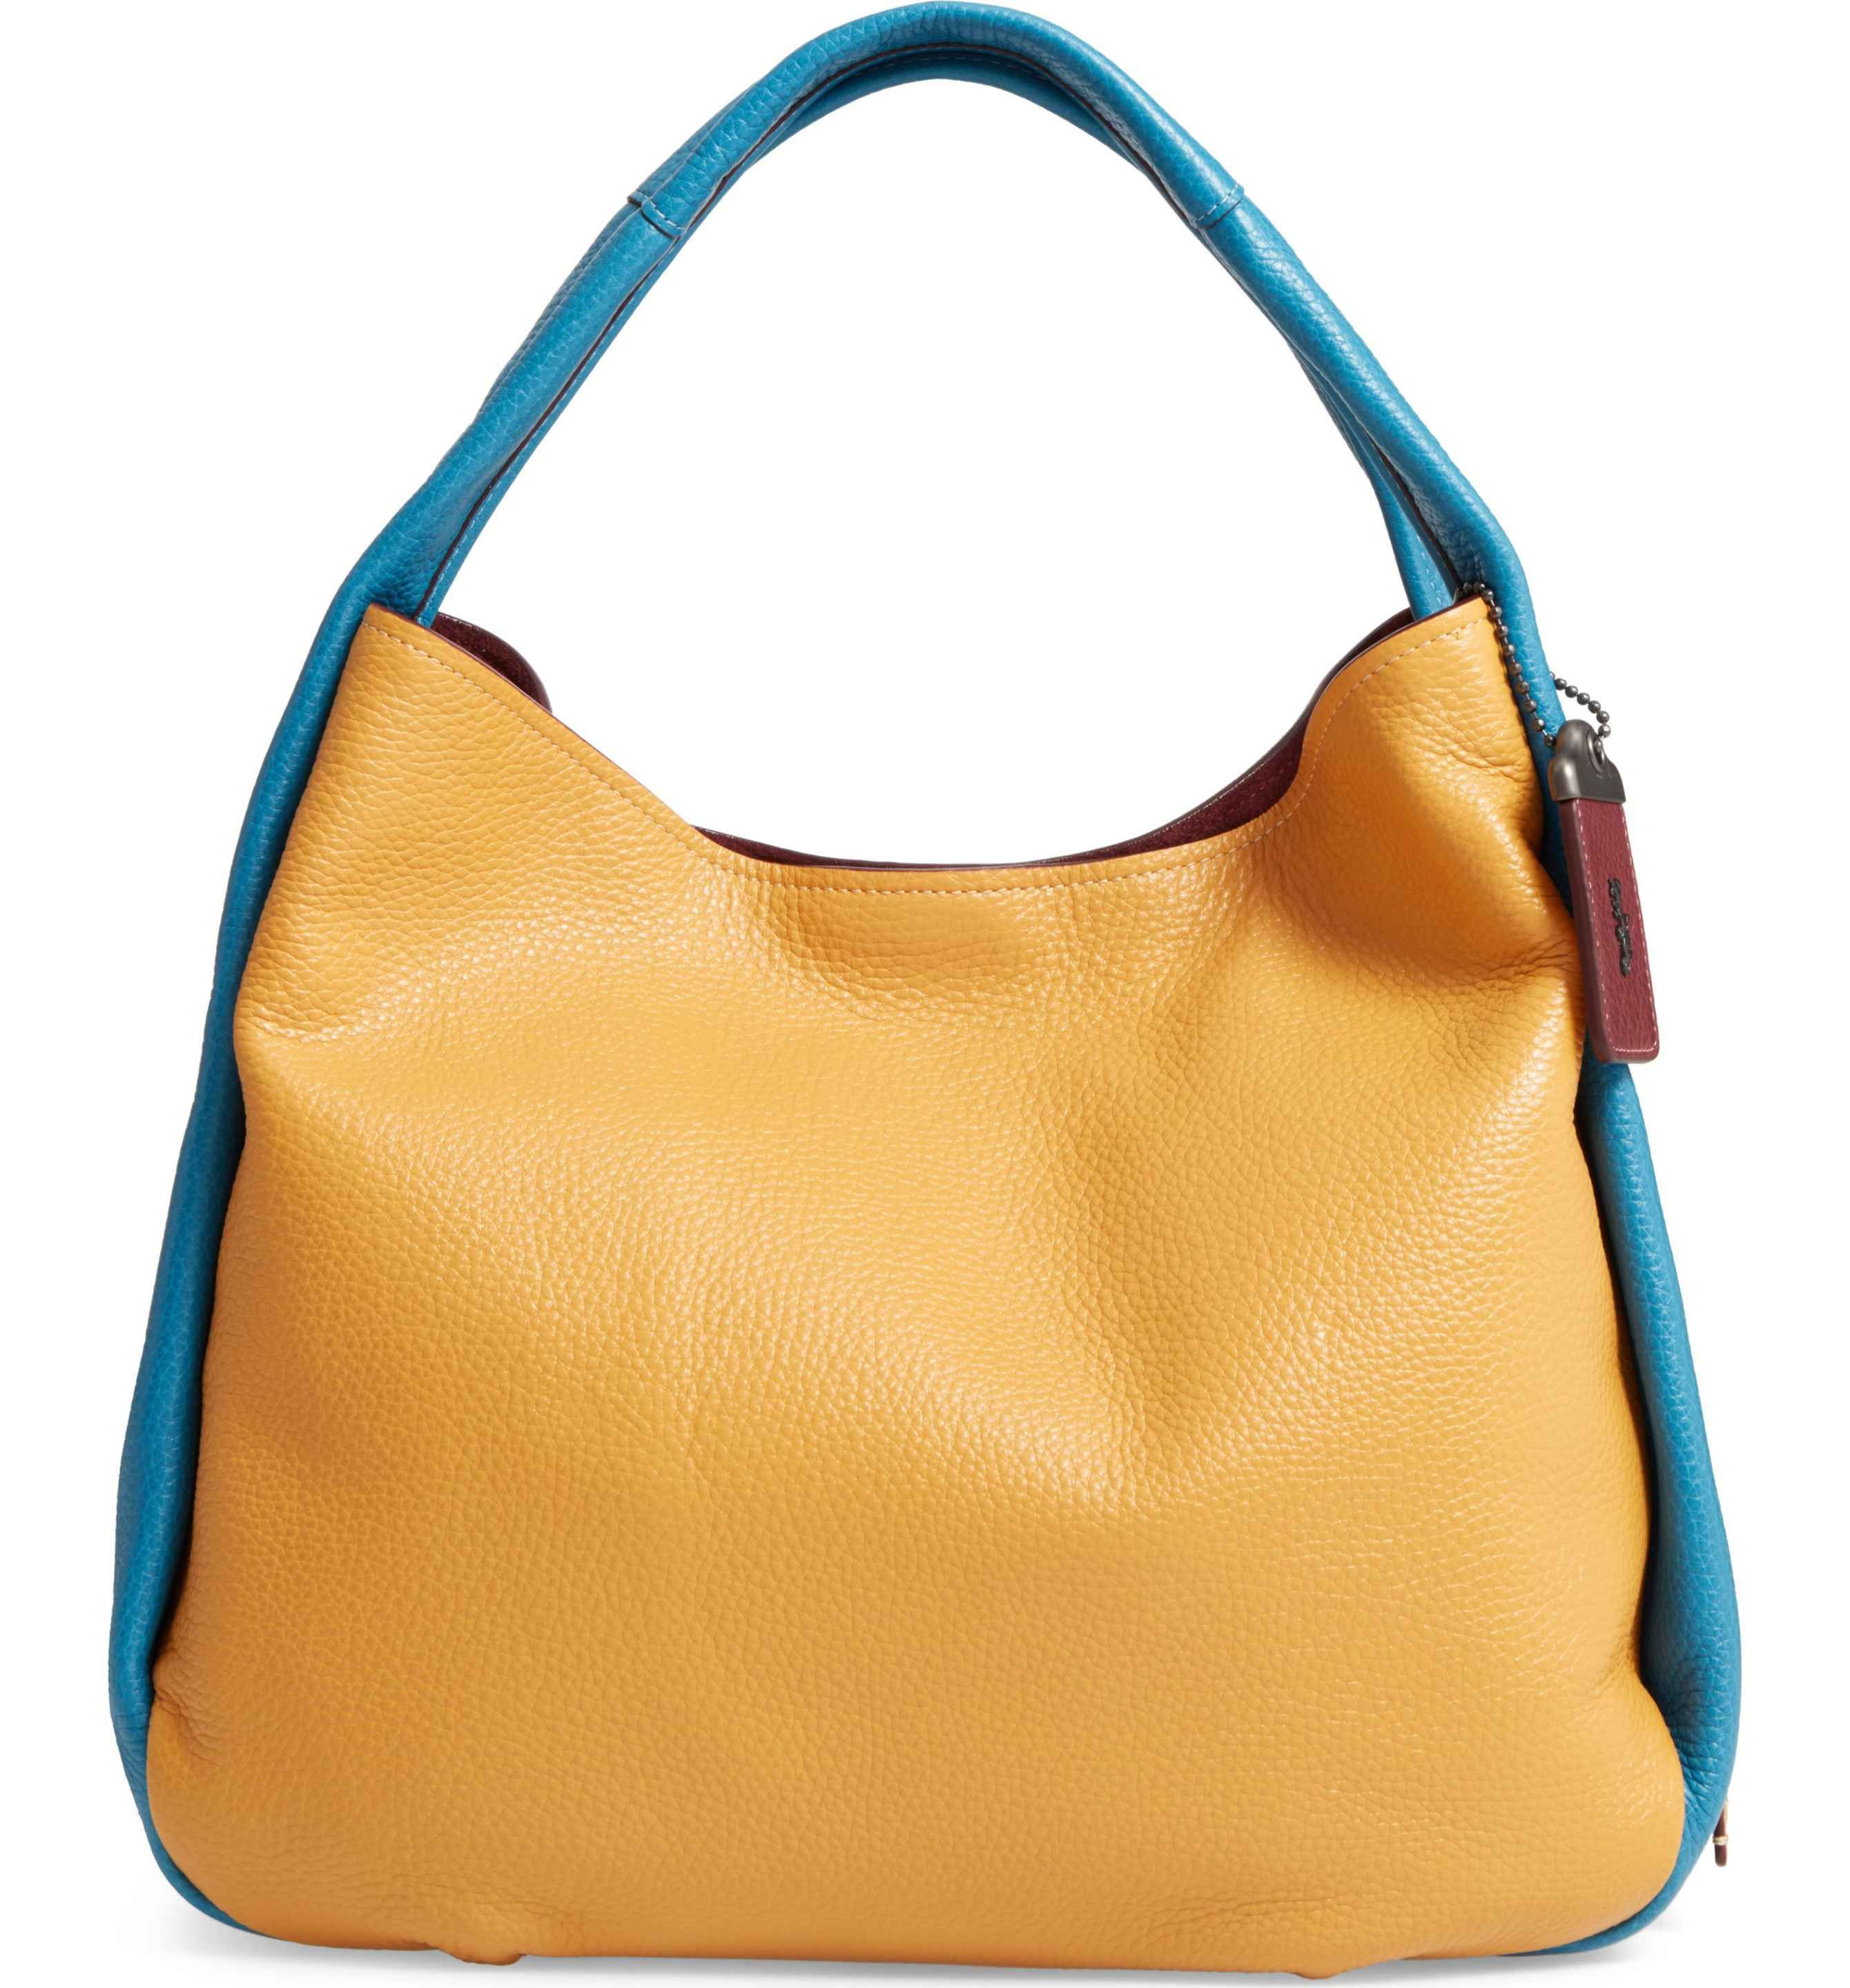 9a7c9a363b64 Main Image - COACH 1941 Colorblock Bandit Leather Hobo Bag